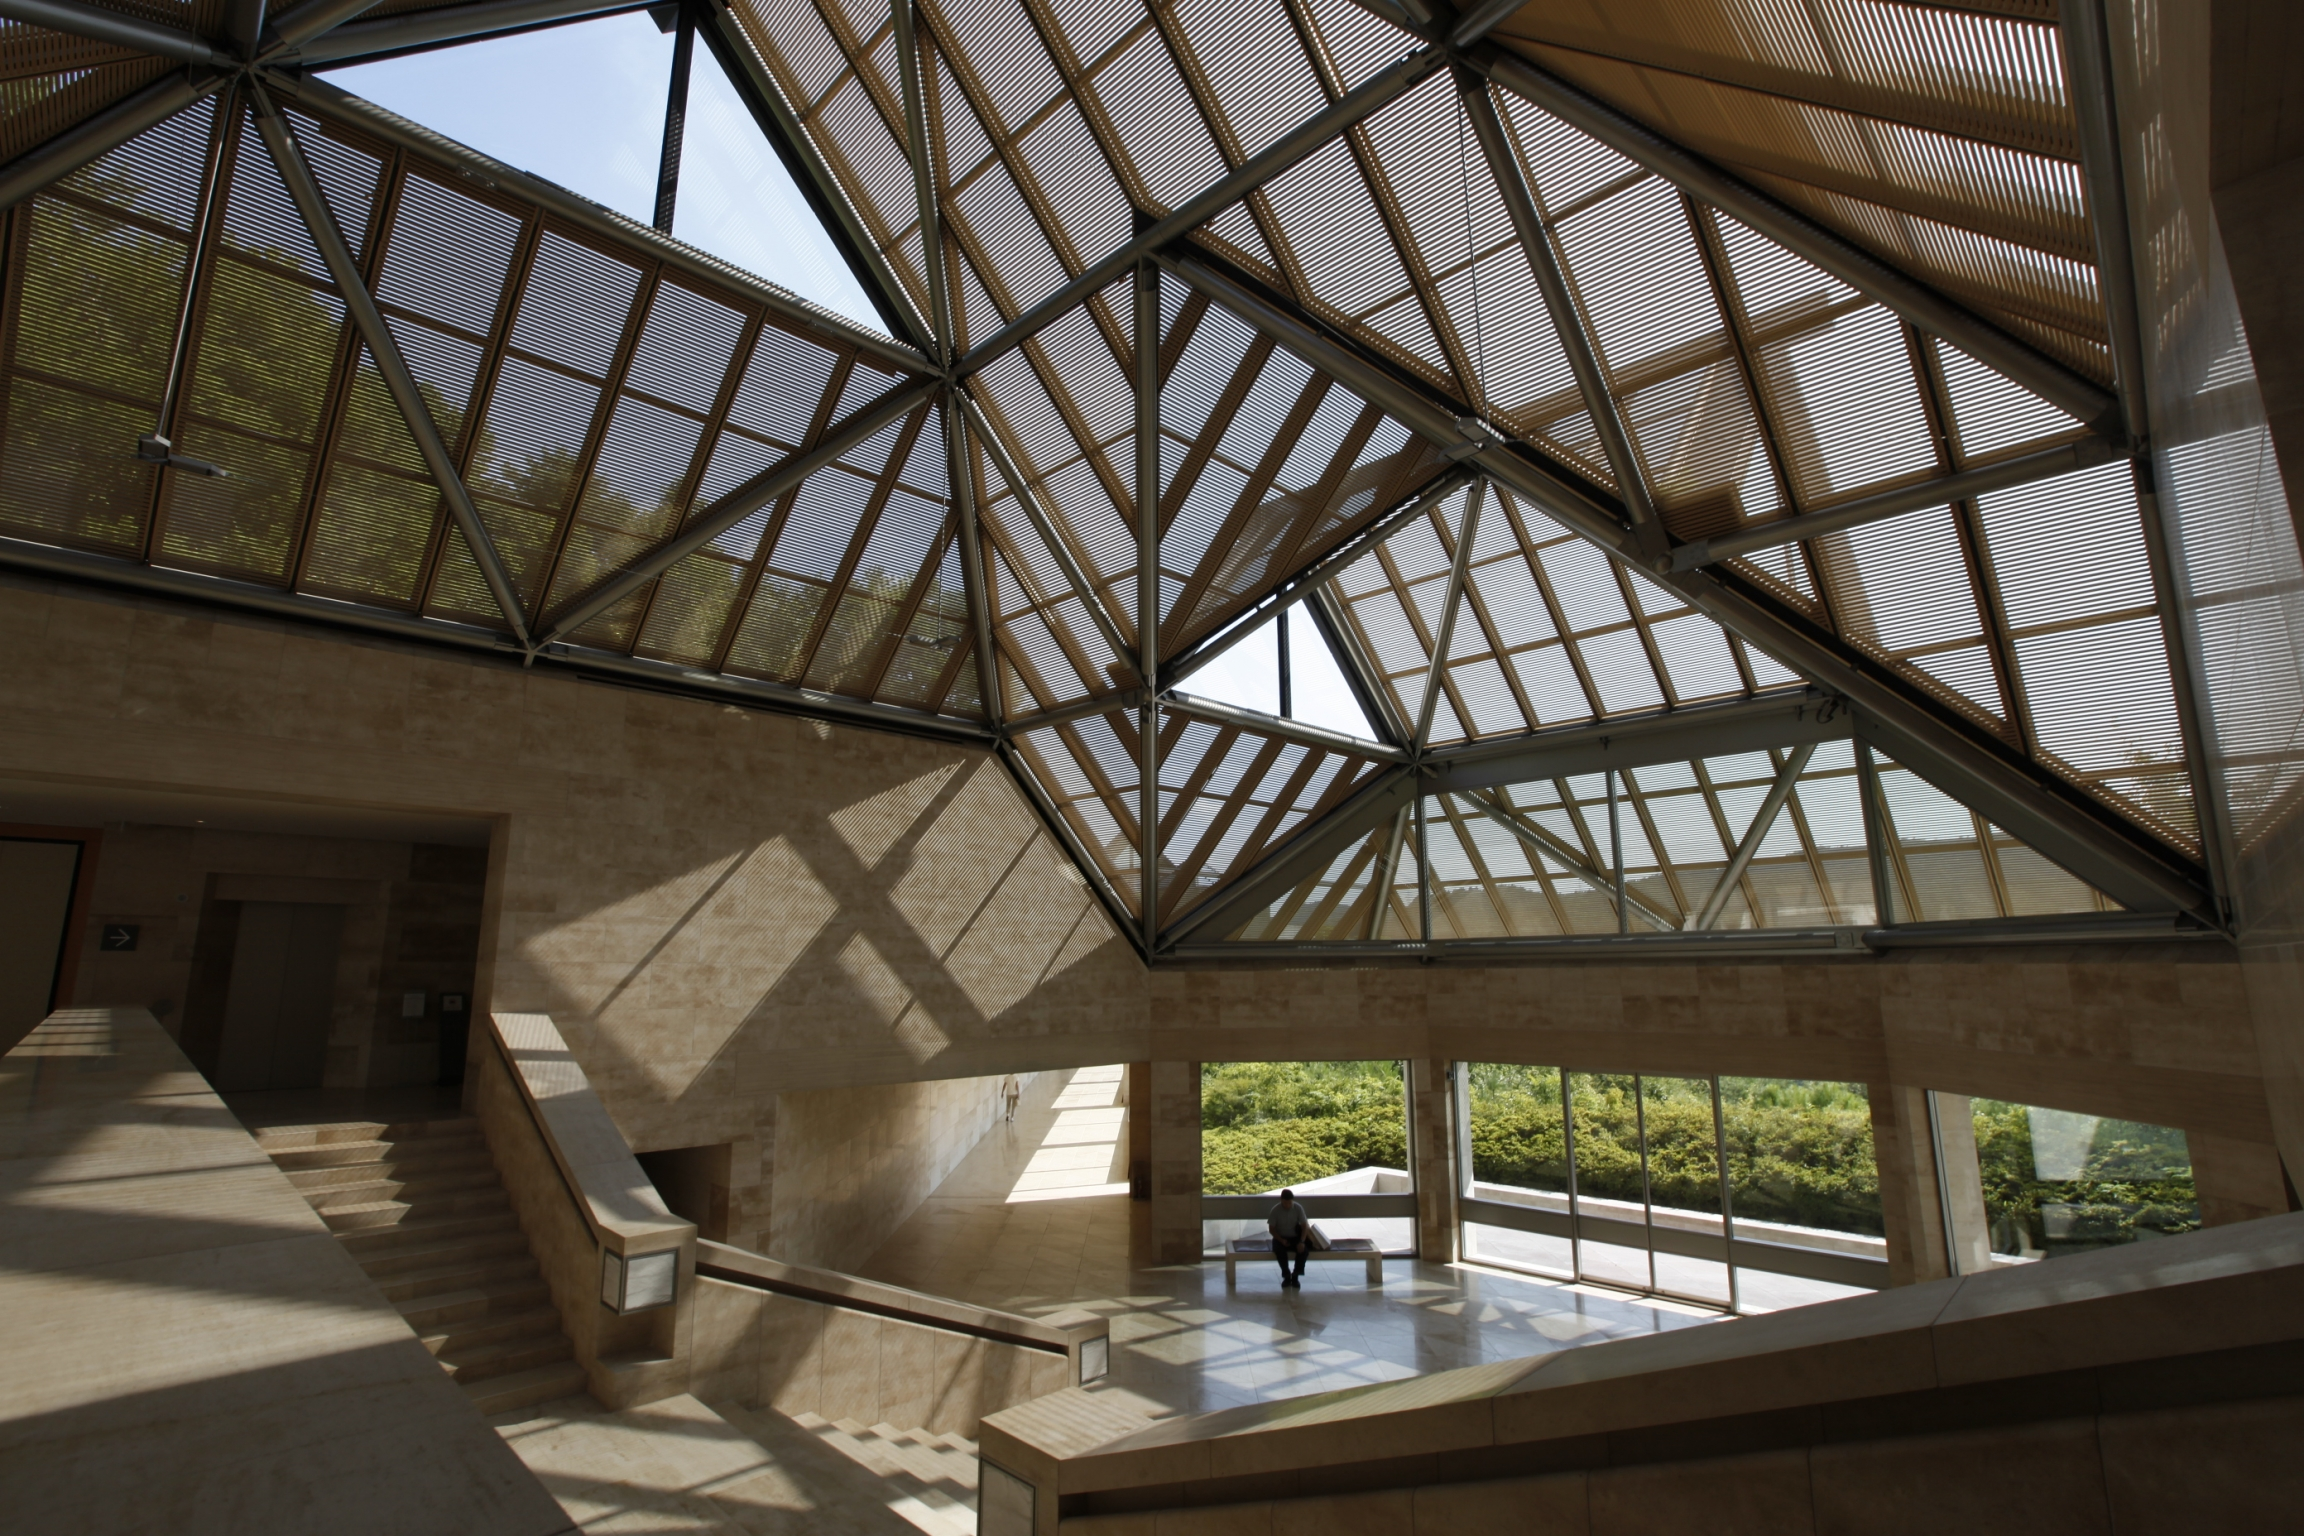 The glass and naturally lit interior of the Miho Museum.